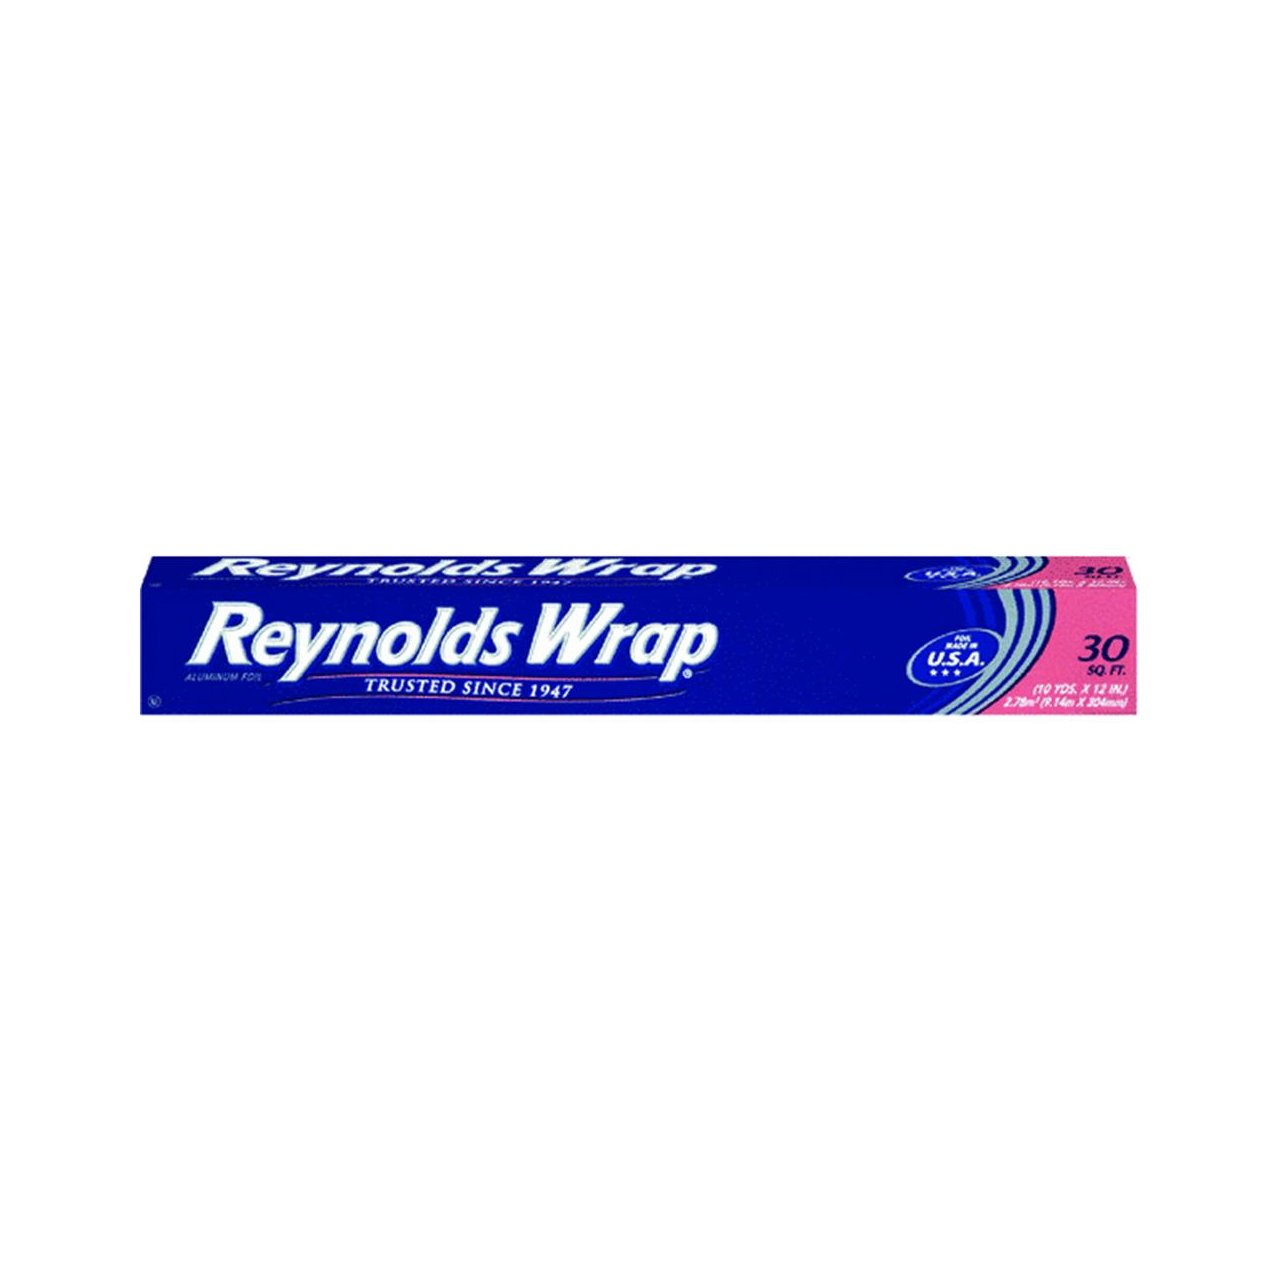 Reynolds Wrap Aluminum Foil (Pack of 2)